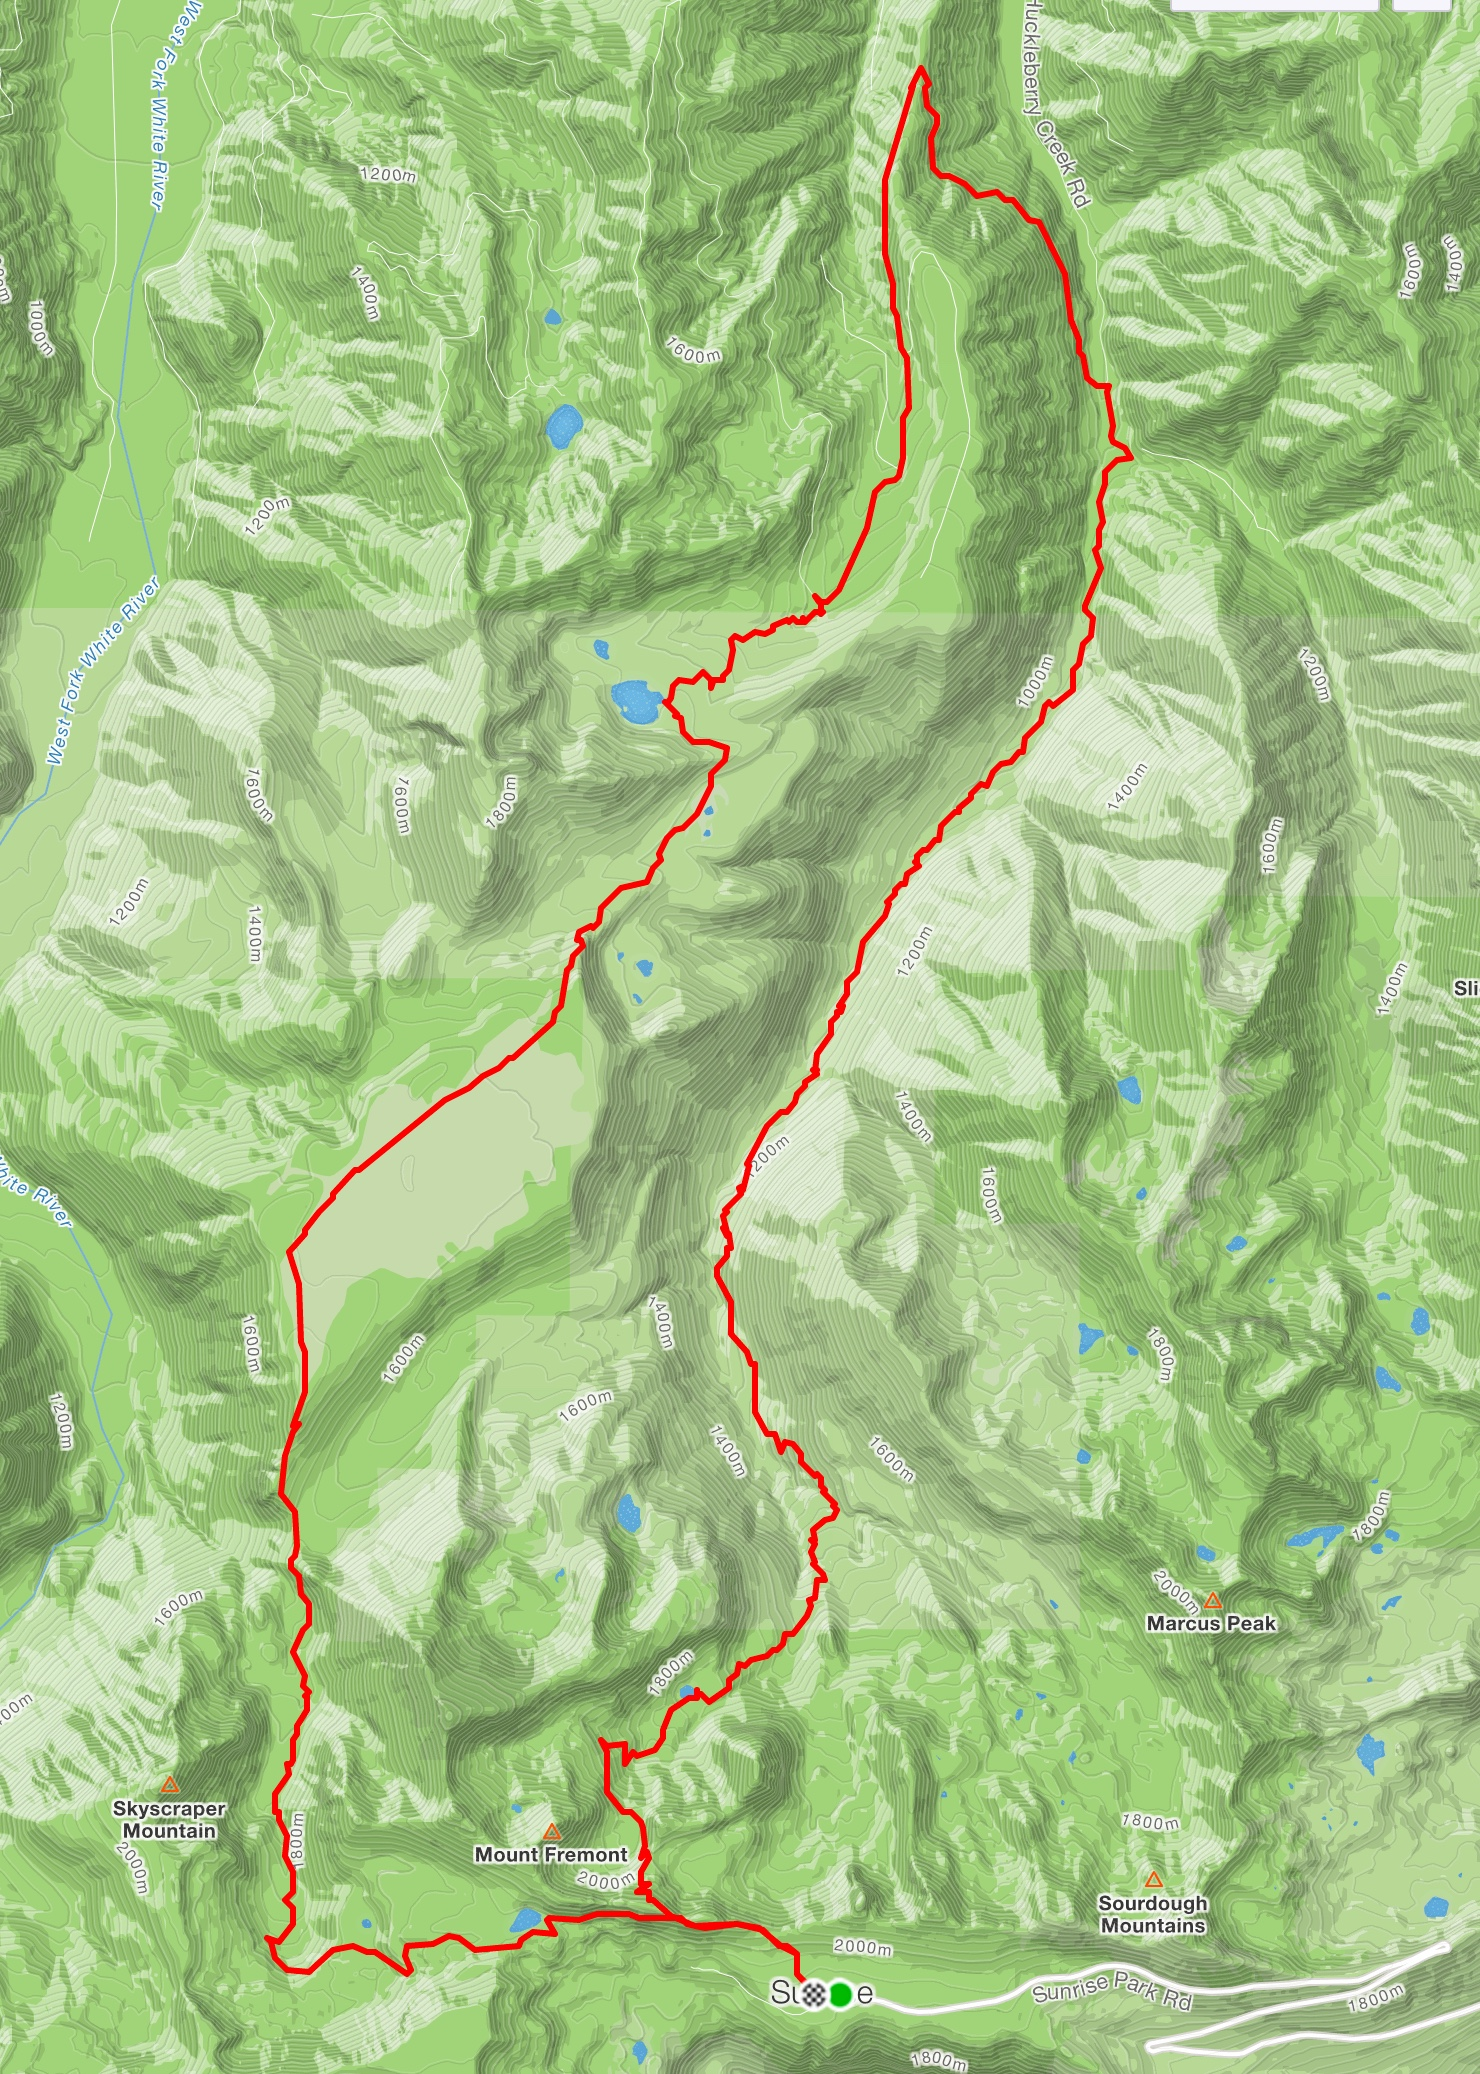 Huckleberry/Grand Park Loop (26 miles/5500')